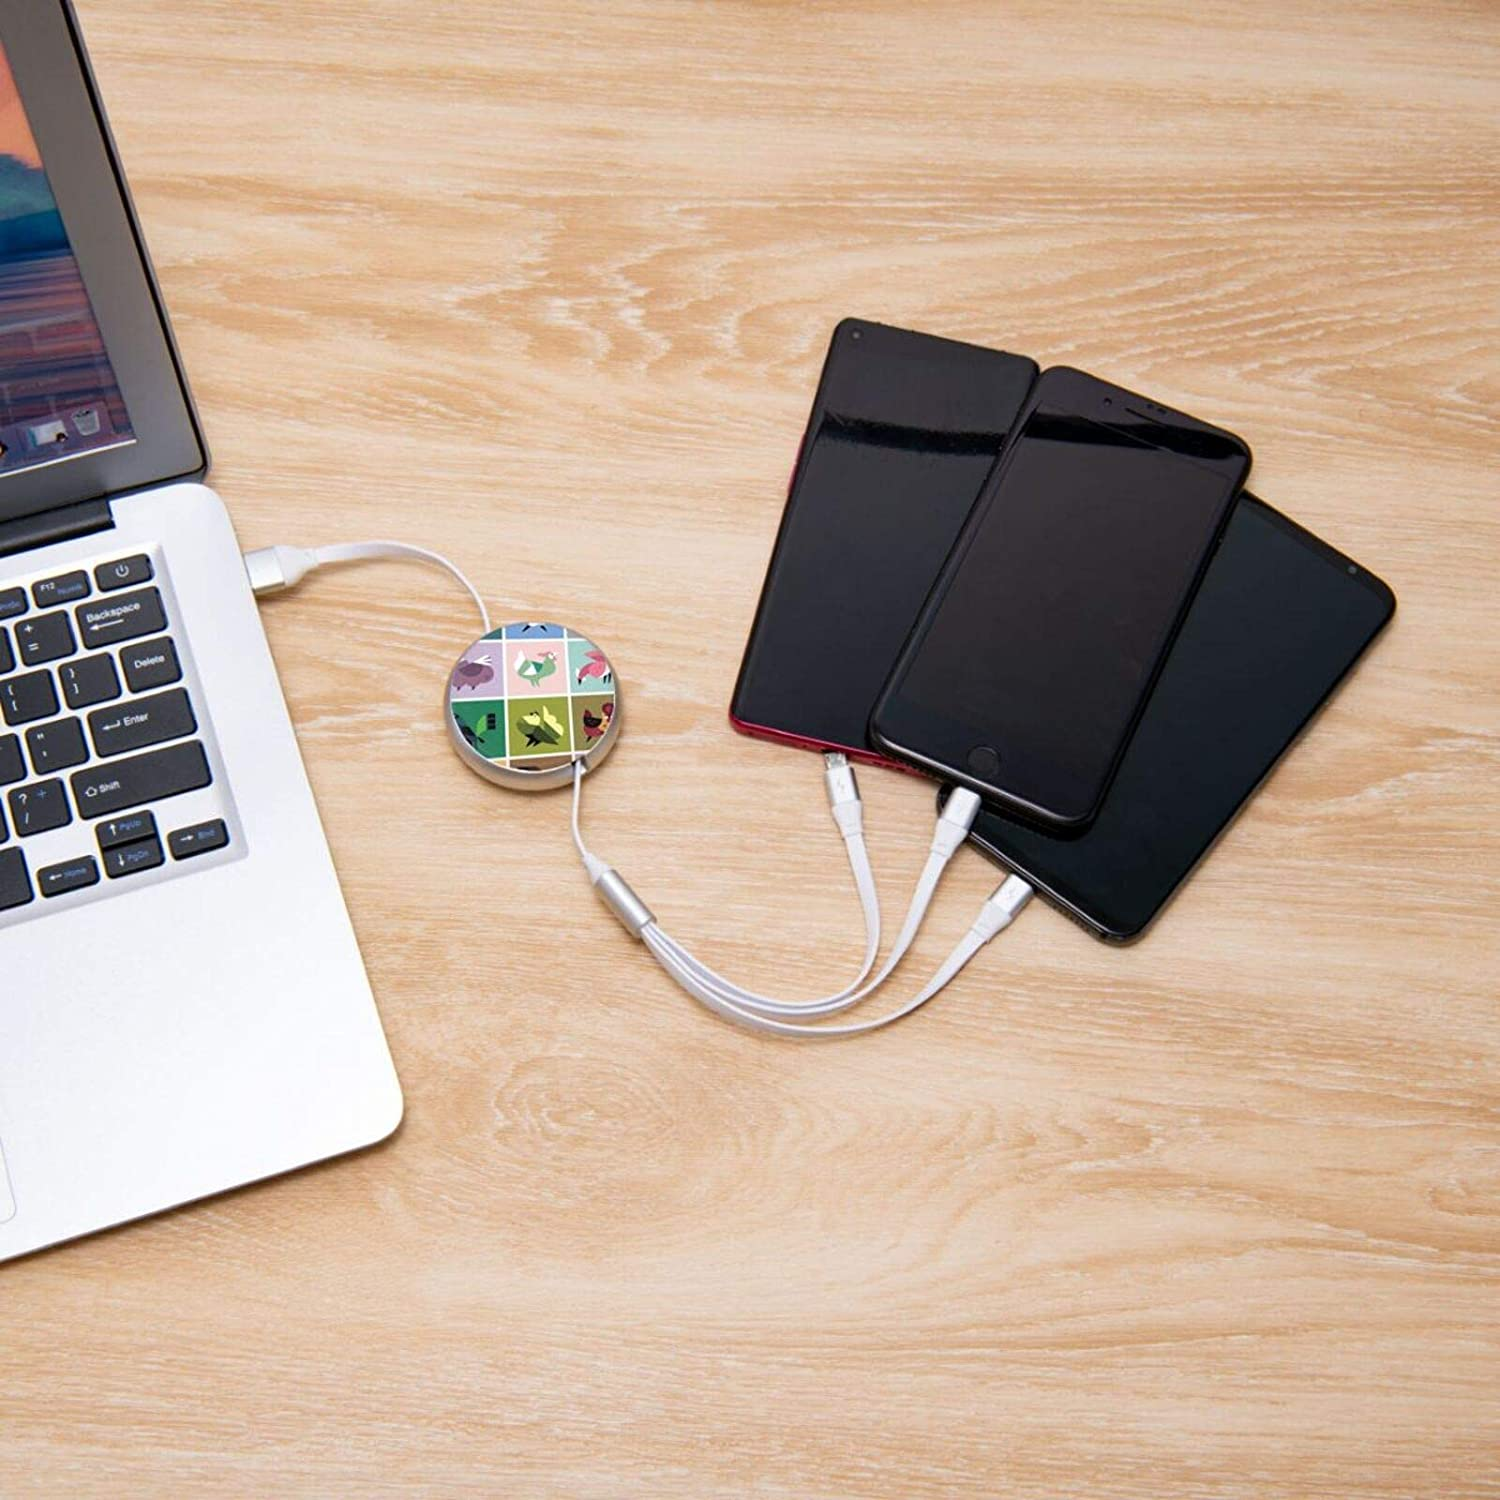 Sitting Arnimal Round Retractable On The Go 3-in-1 Charging Cable Support Fast Charging and Data Sync 5 Adjustable Lengths USB Data Cable 3.0a Small Size Easy to Carry USB Data Cable